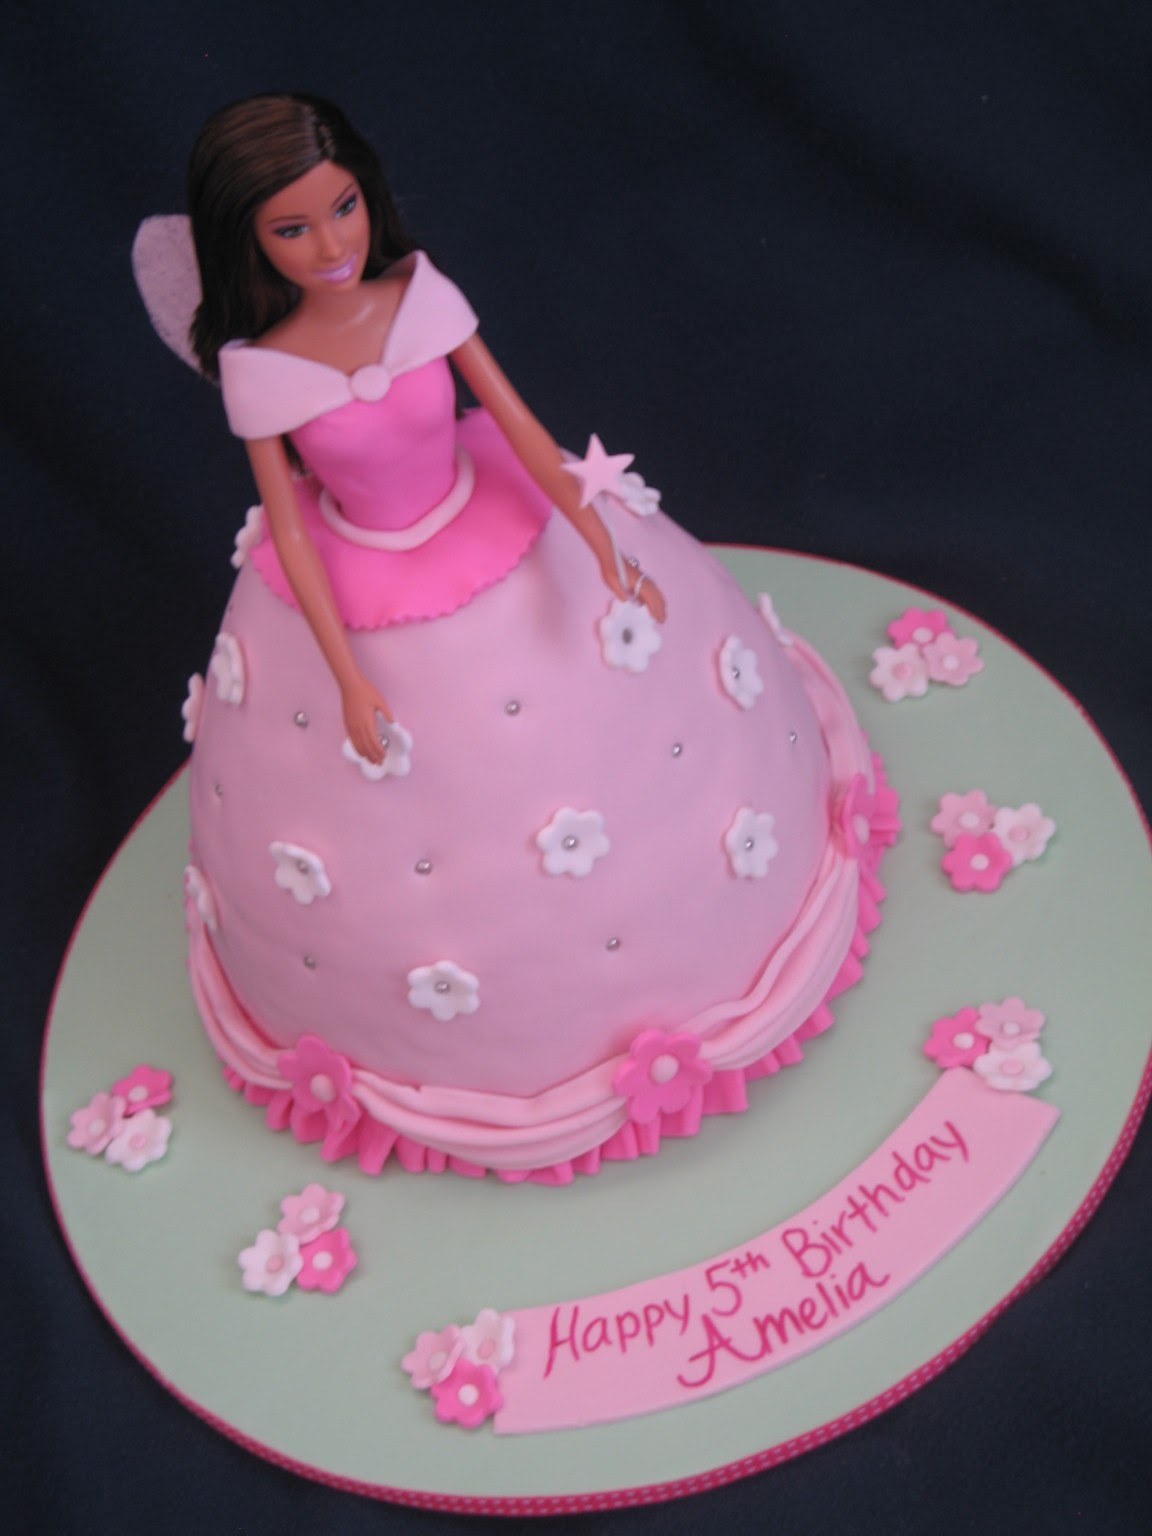 Blissfully Sweet A Barbie Beauty Birthday Cake